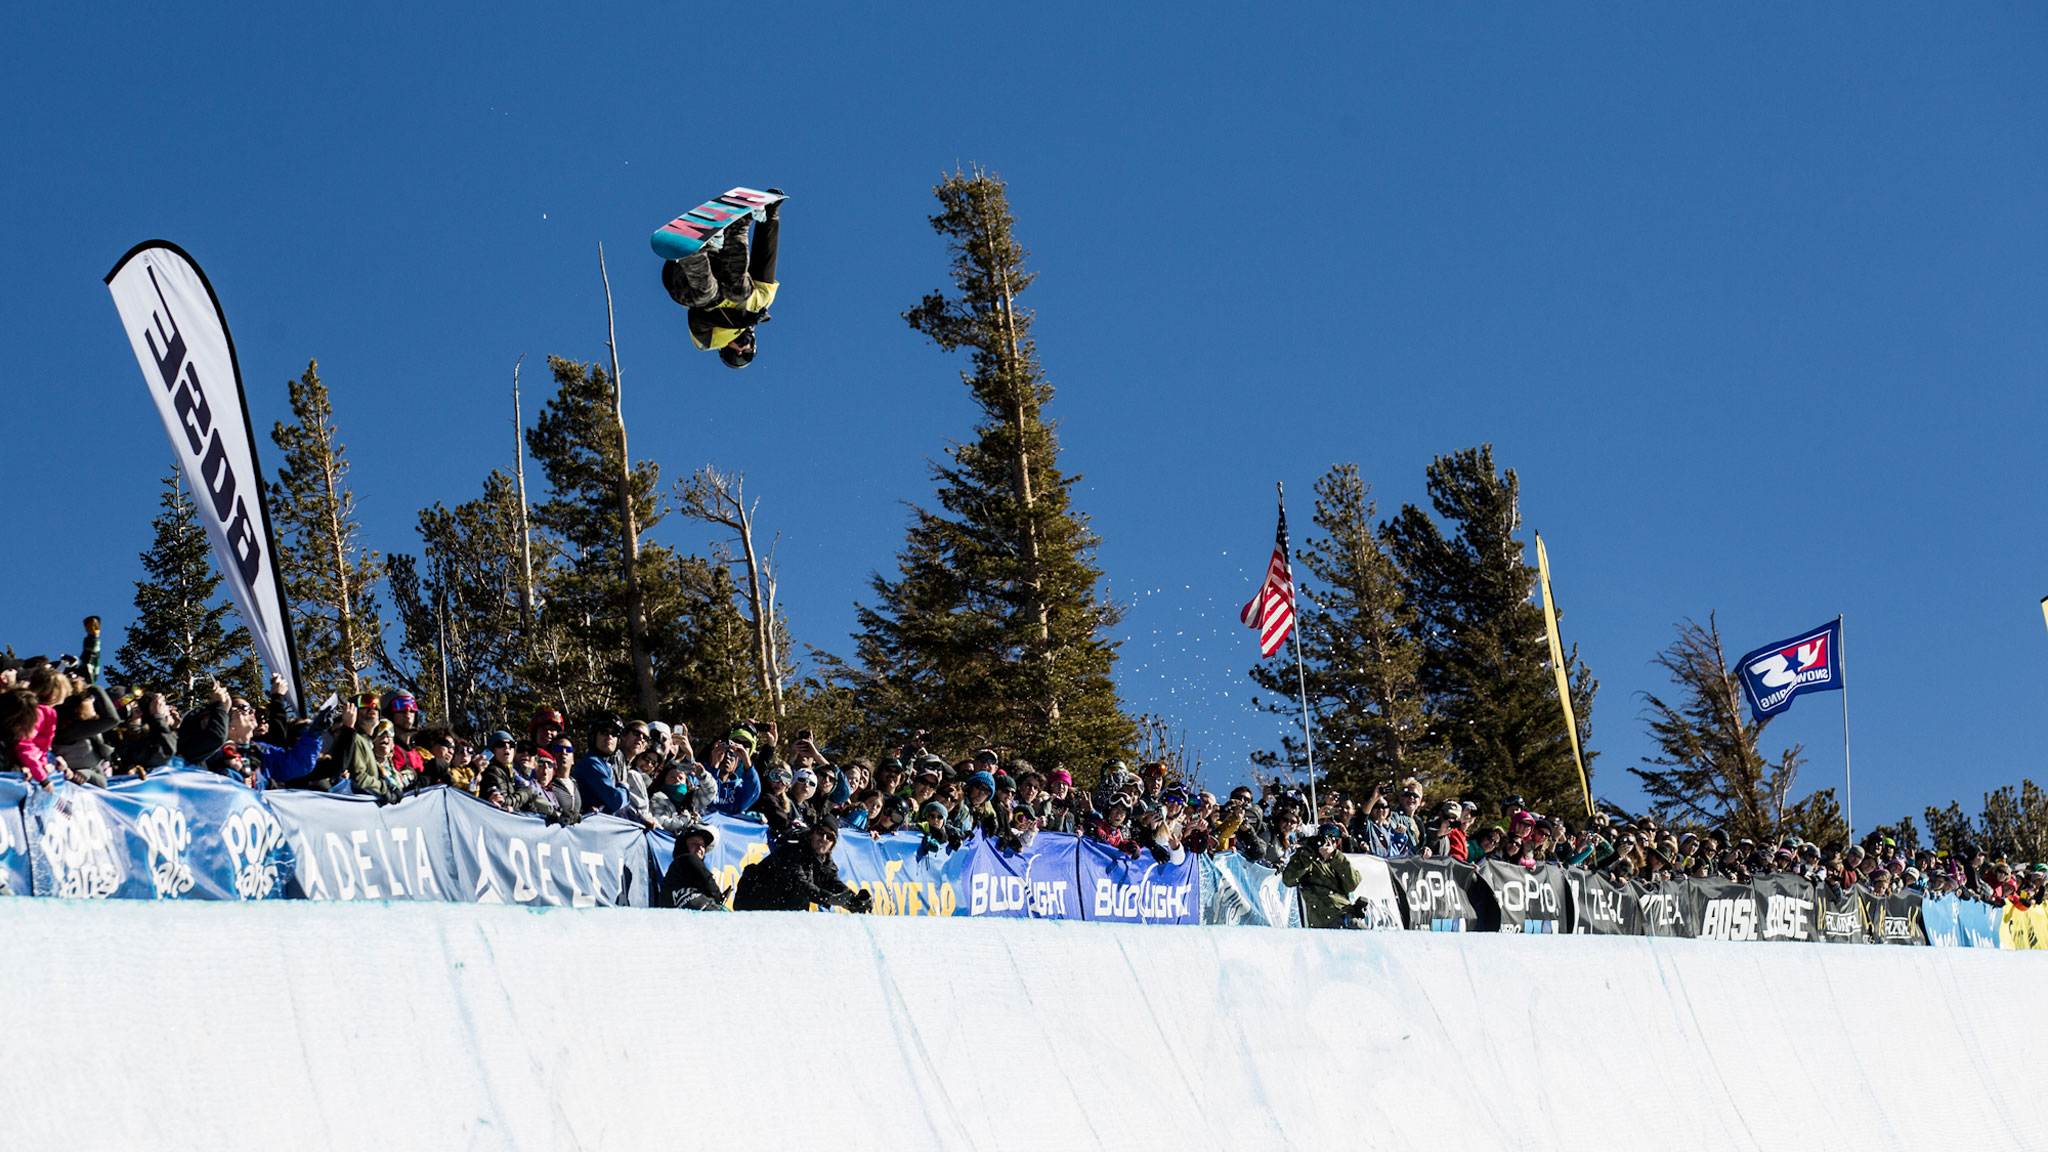 Taylor Gold, Halfpipe